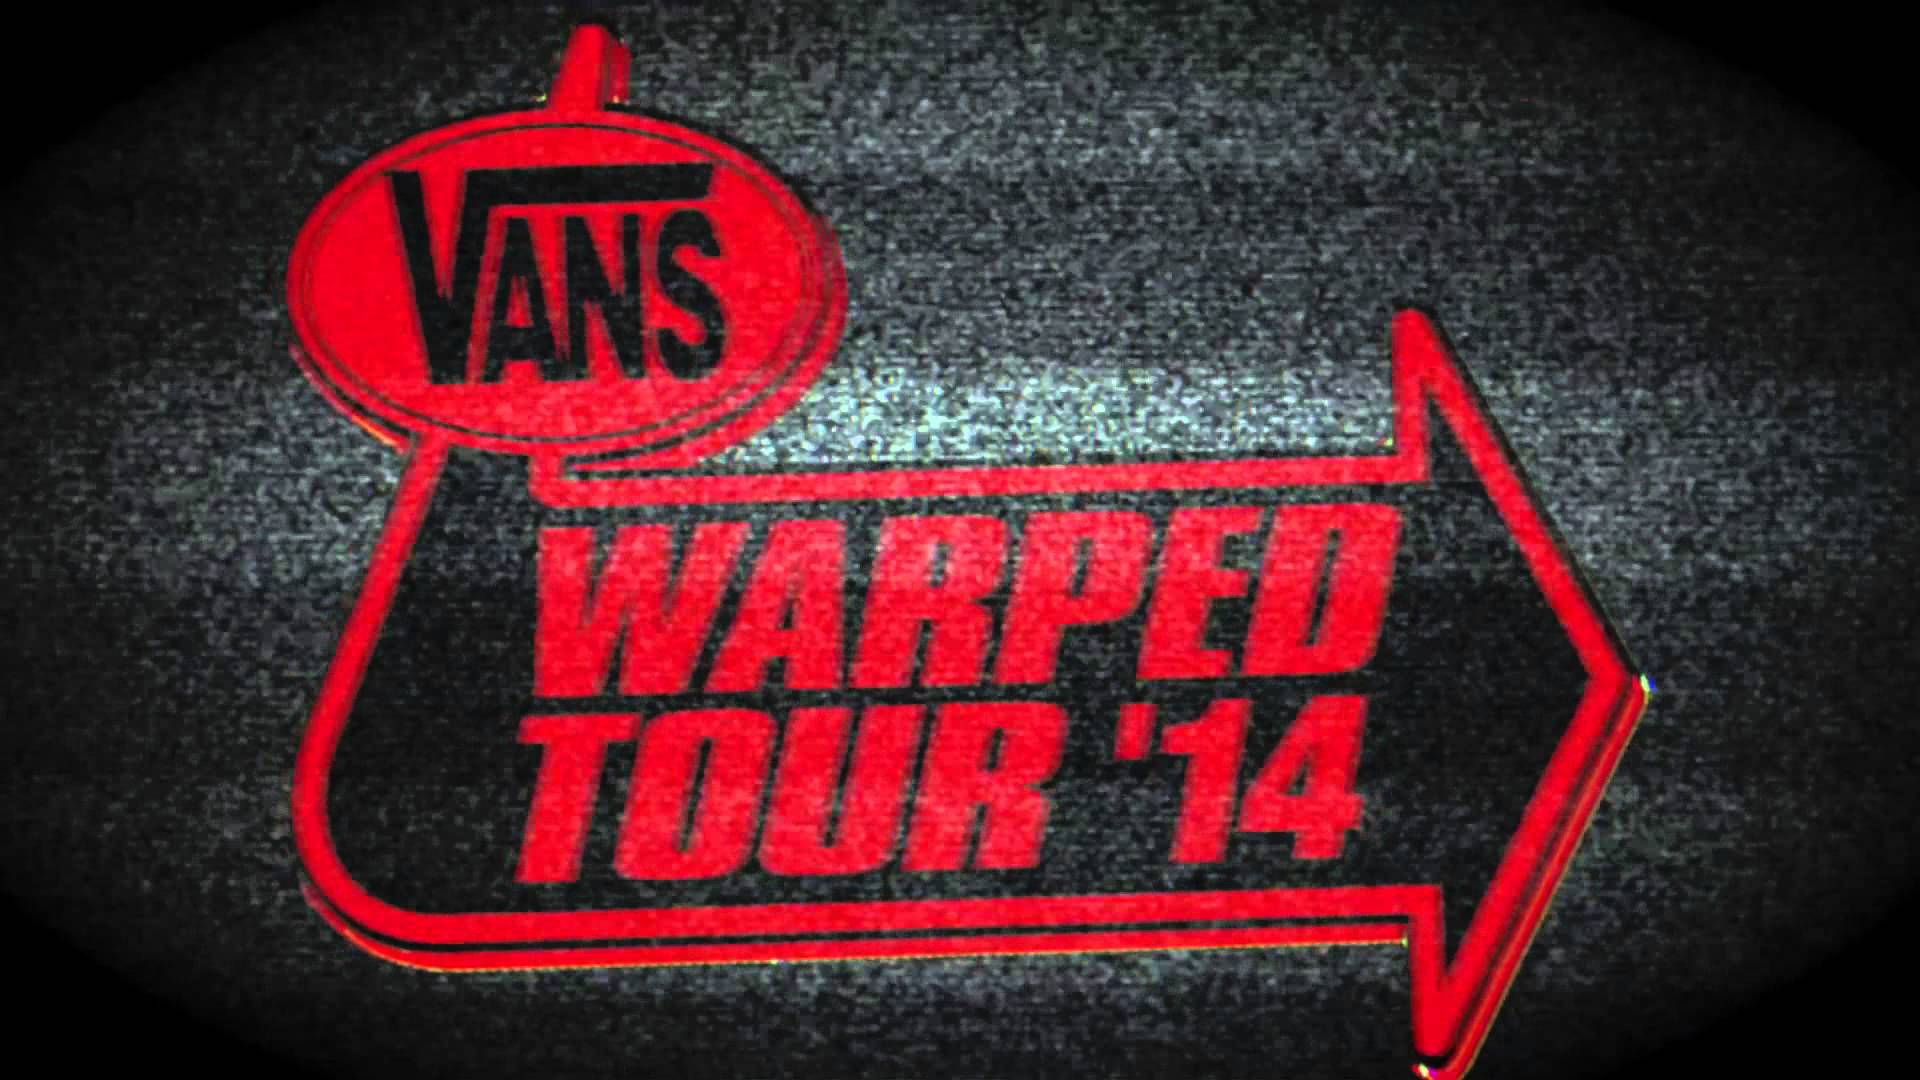 Motionless In White - Vans Warped Tour 2014 Announcement